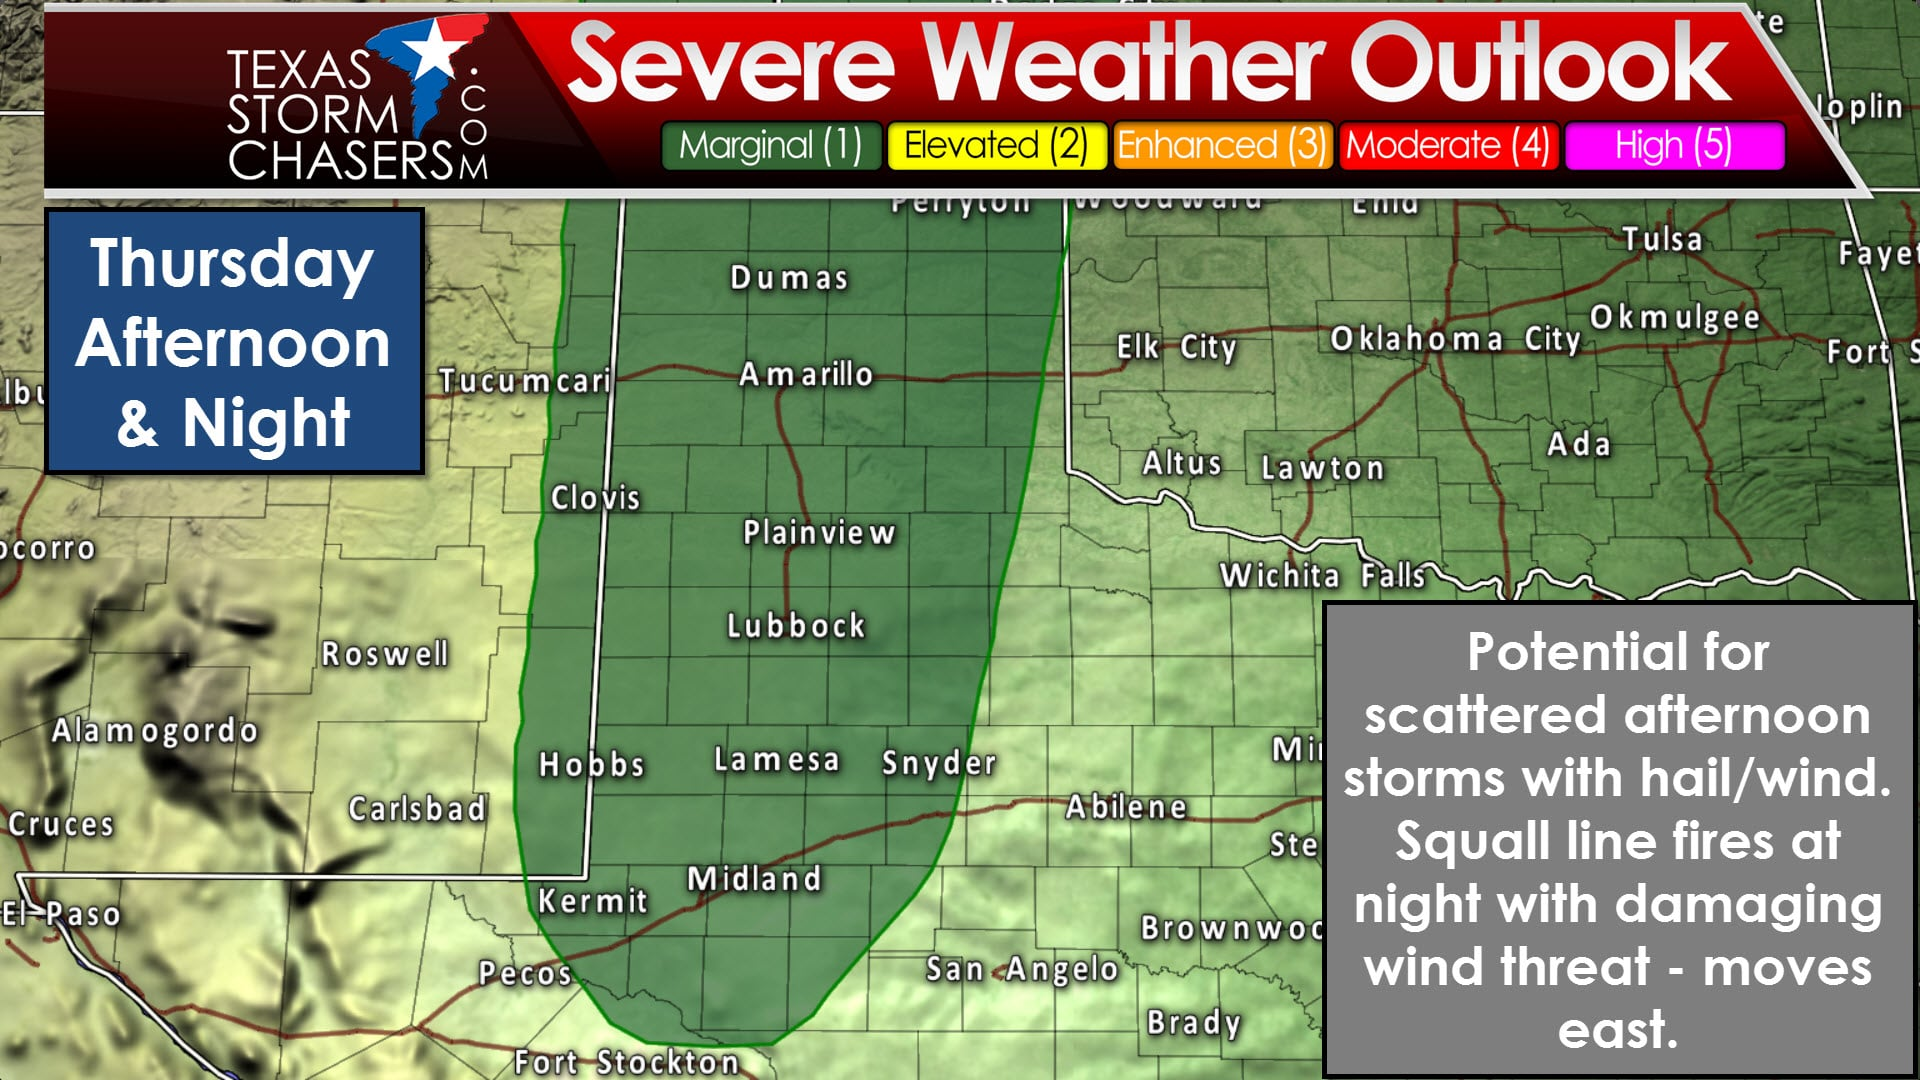 strong thunderstorms possible thursday and friday texas storm the storm prediction center has placed a category one marginal risk of severe weather across much of the texas panhandle west texas and permian basin